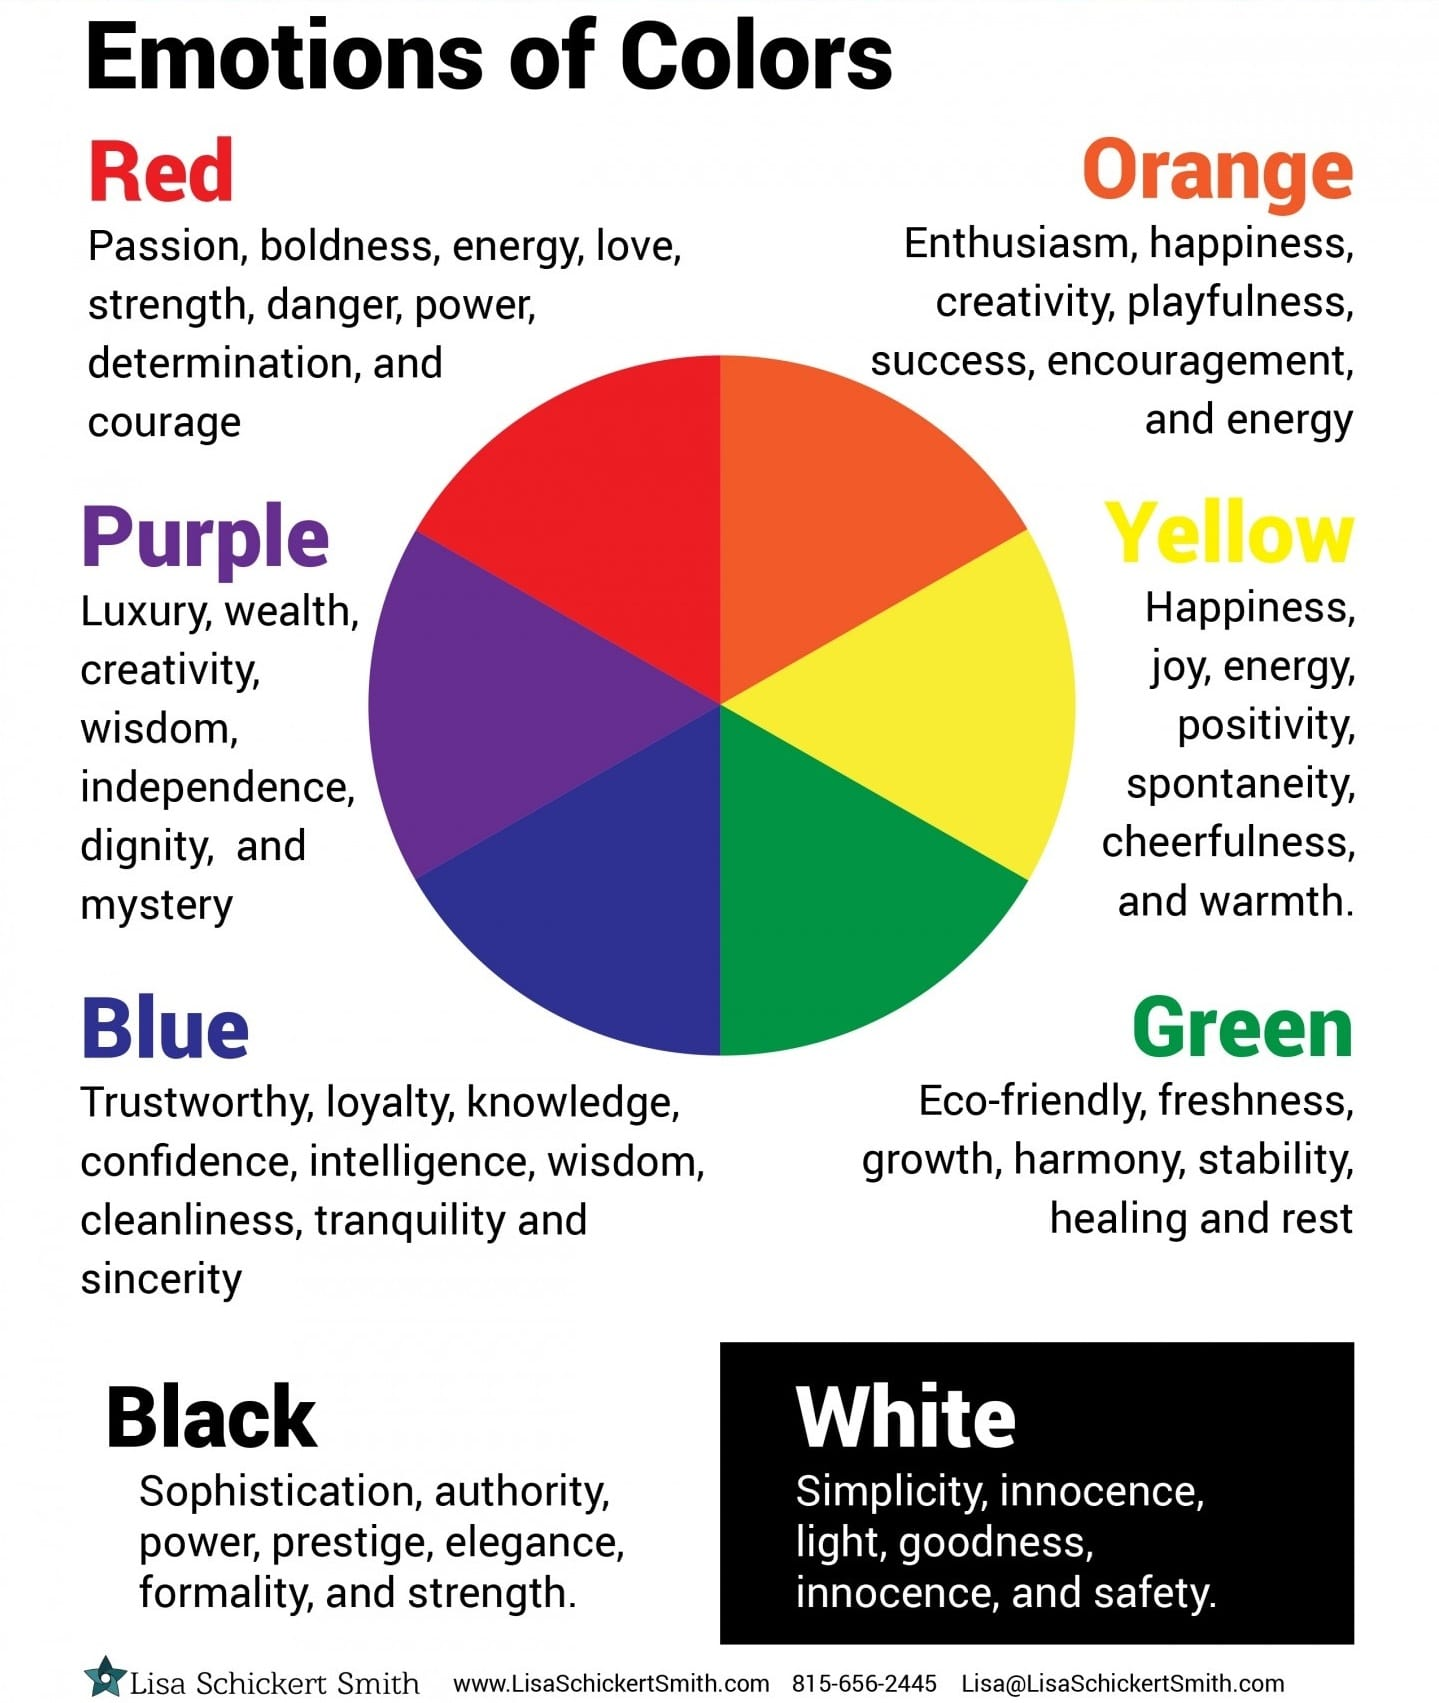 Emotions of Colors